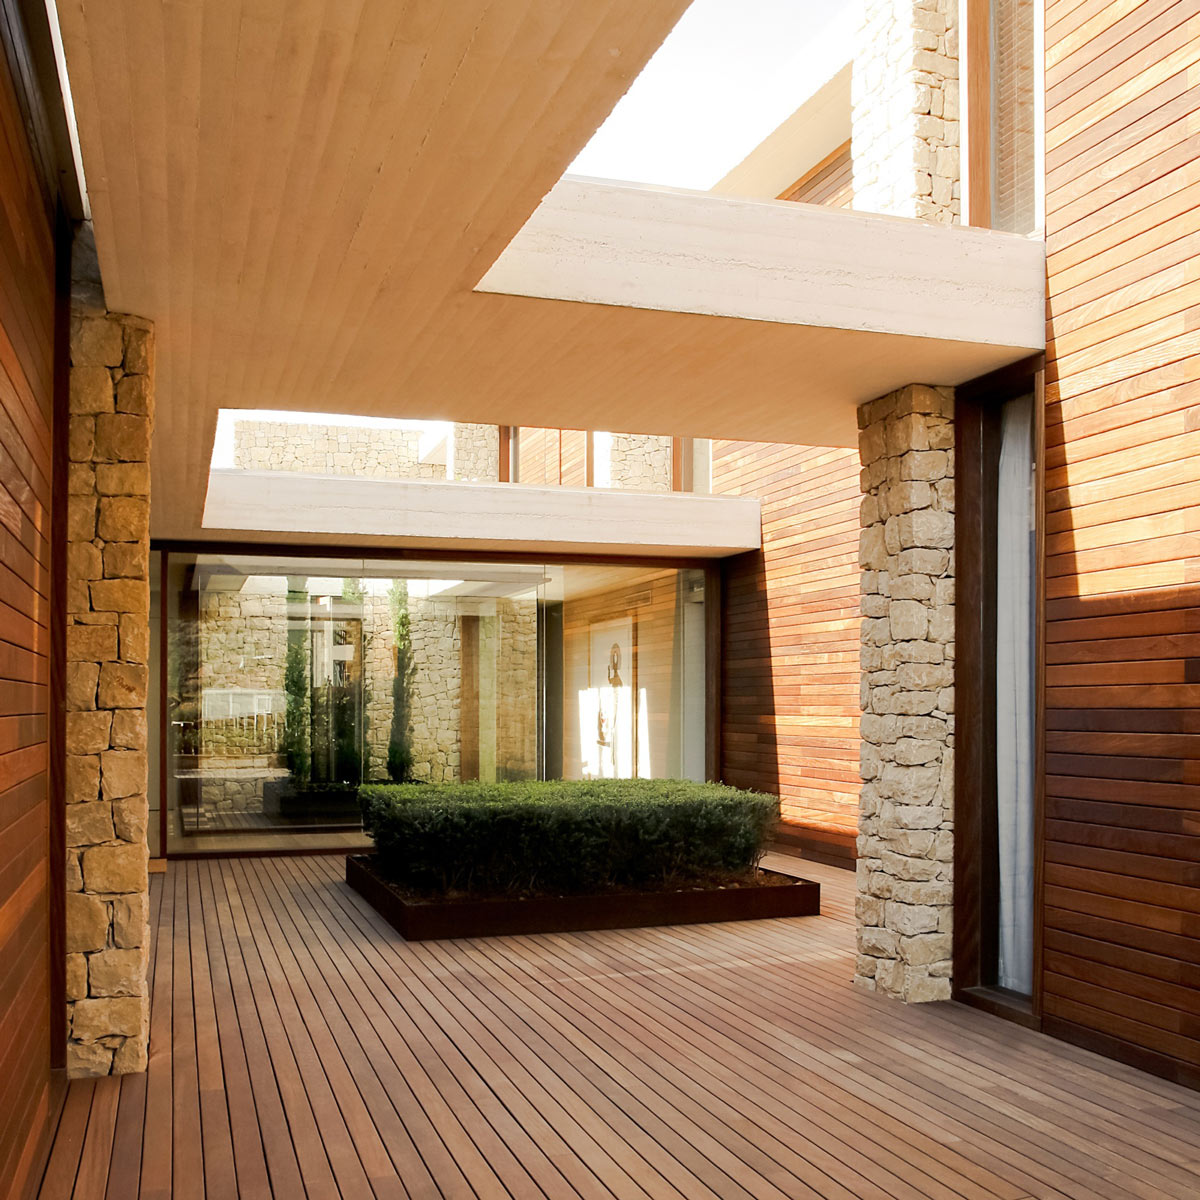 Courtyard, Contemporary Home in Monasterios, Spain